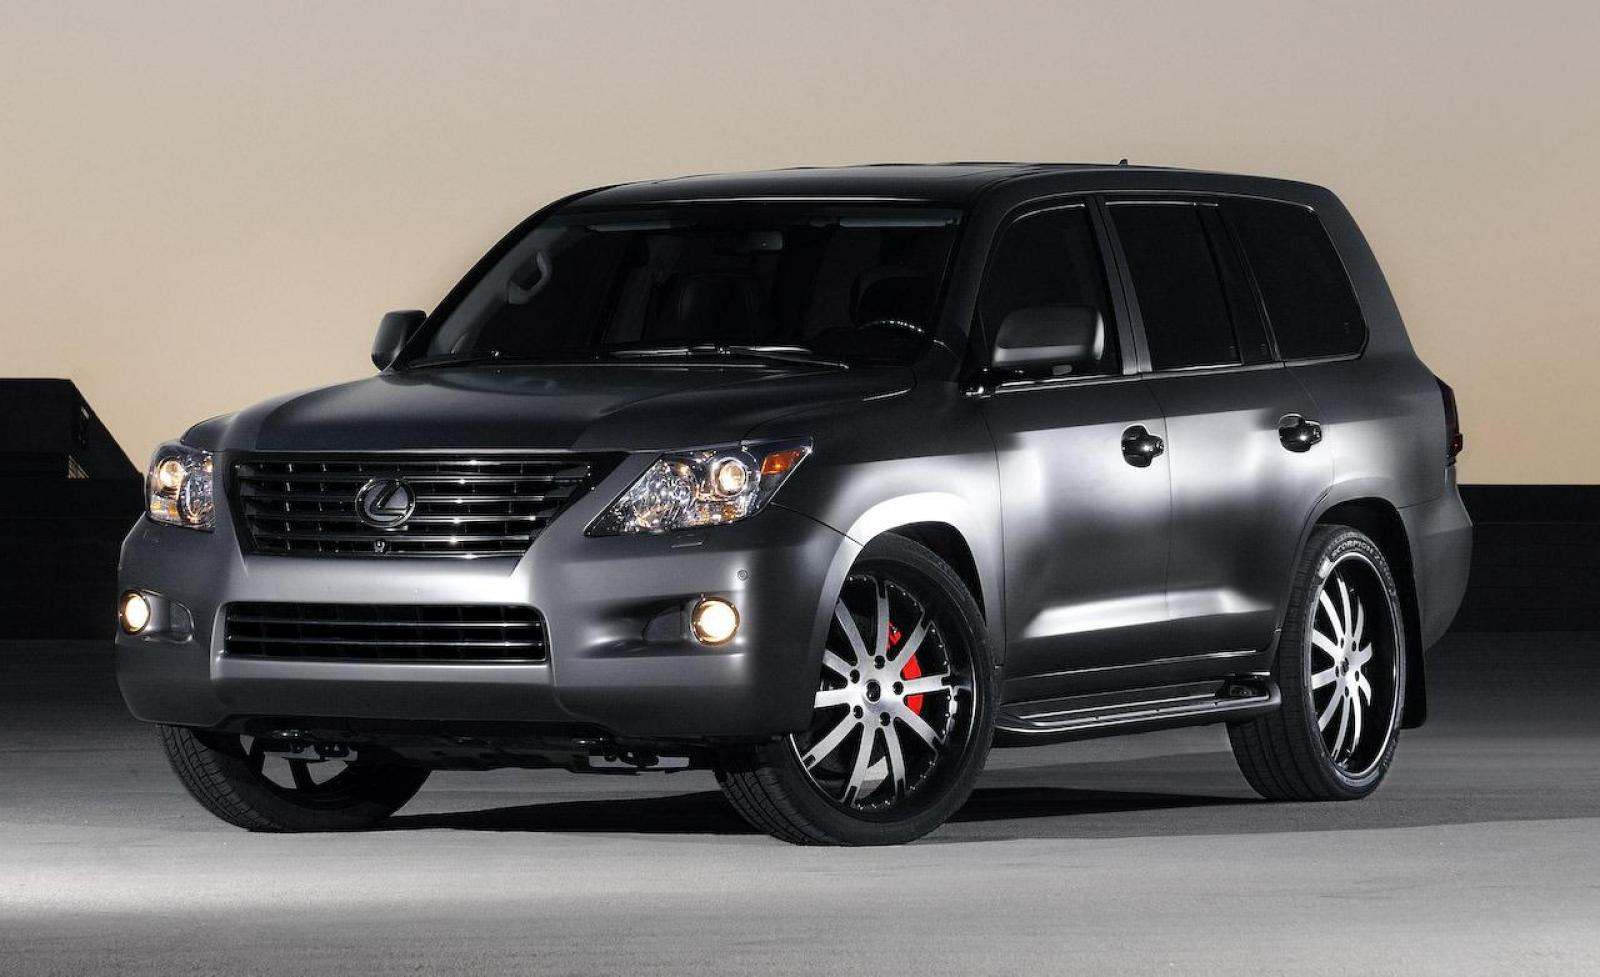 2009 lexus lx 570 information and photos zombiedrive. Black Bedroom Furniture Sets. Home Design Ideas